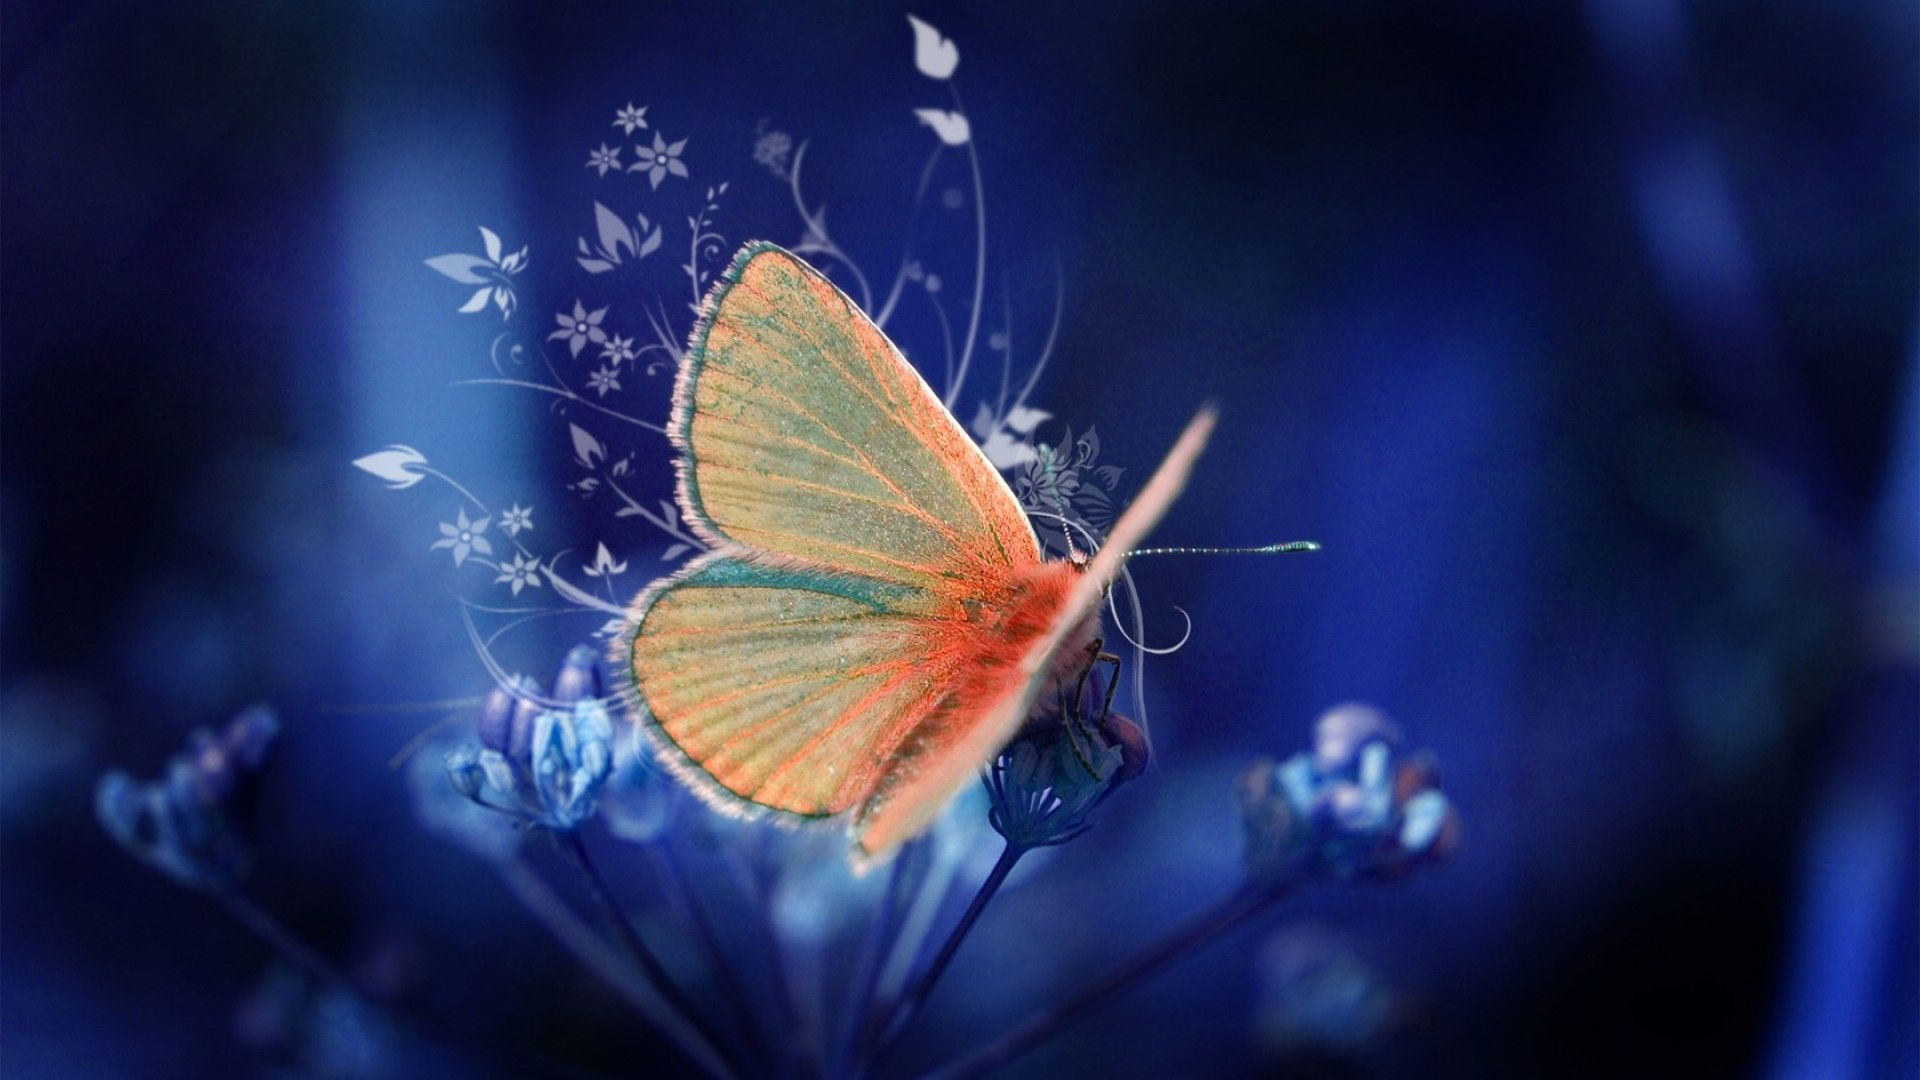 Hd wallpaper cave - Butterfly Wallpapers Hd Wallpaper Cave